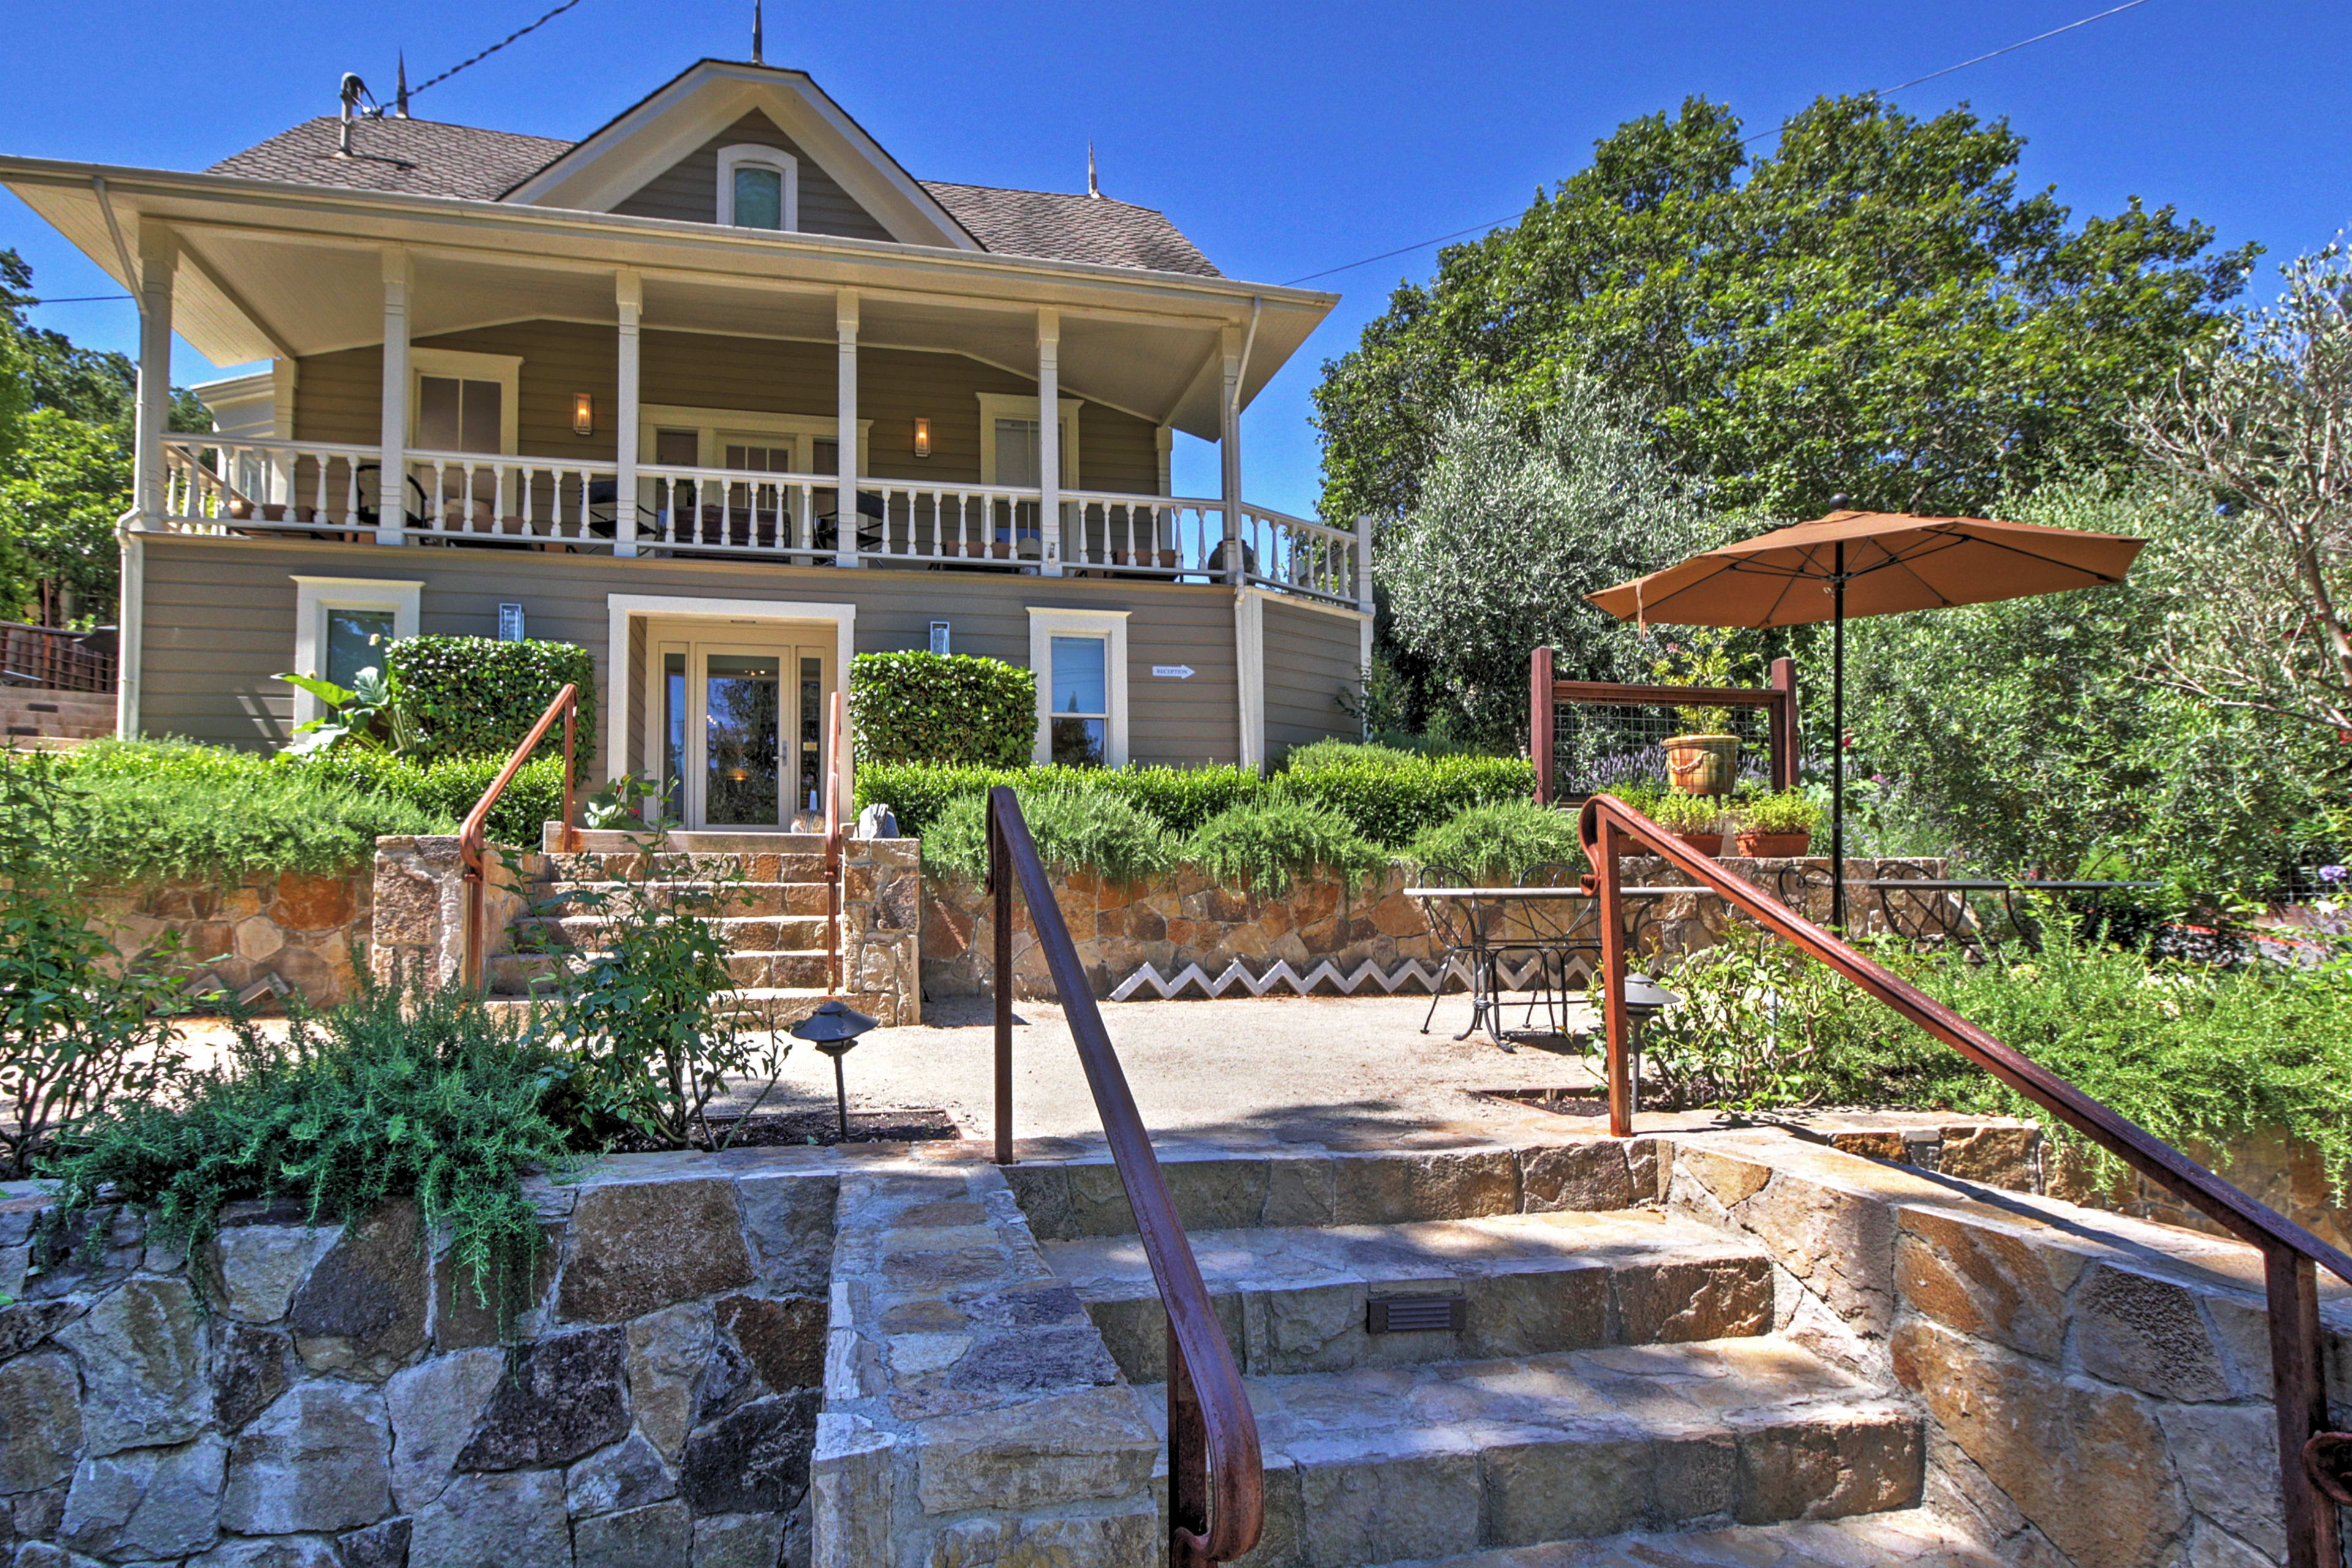 Explore Napa Valley while enjoying the luxuries of the 7BR, 7.5-bath home.